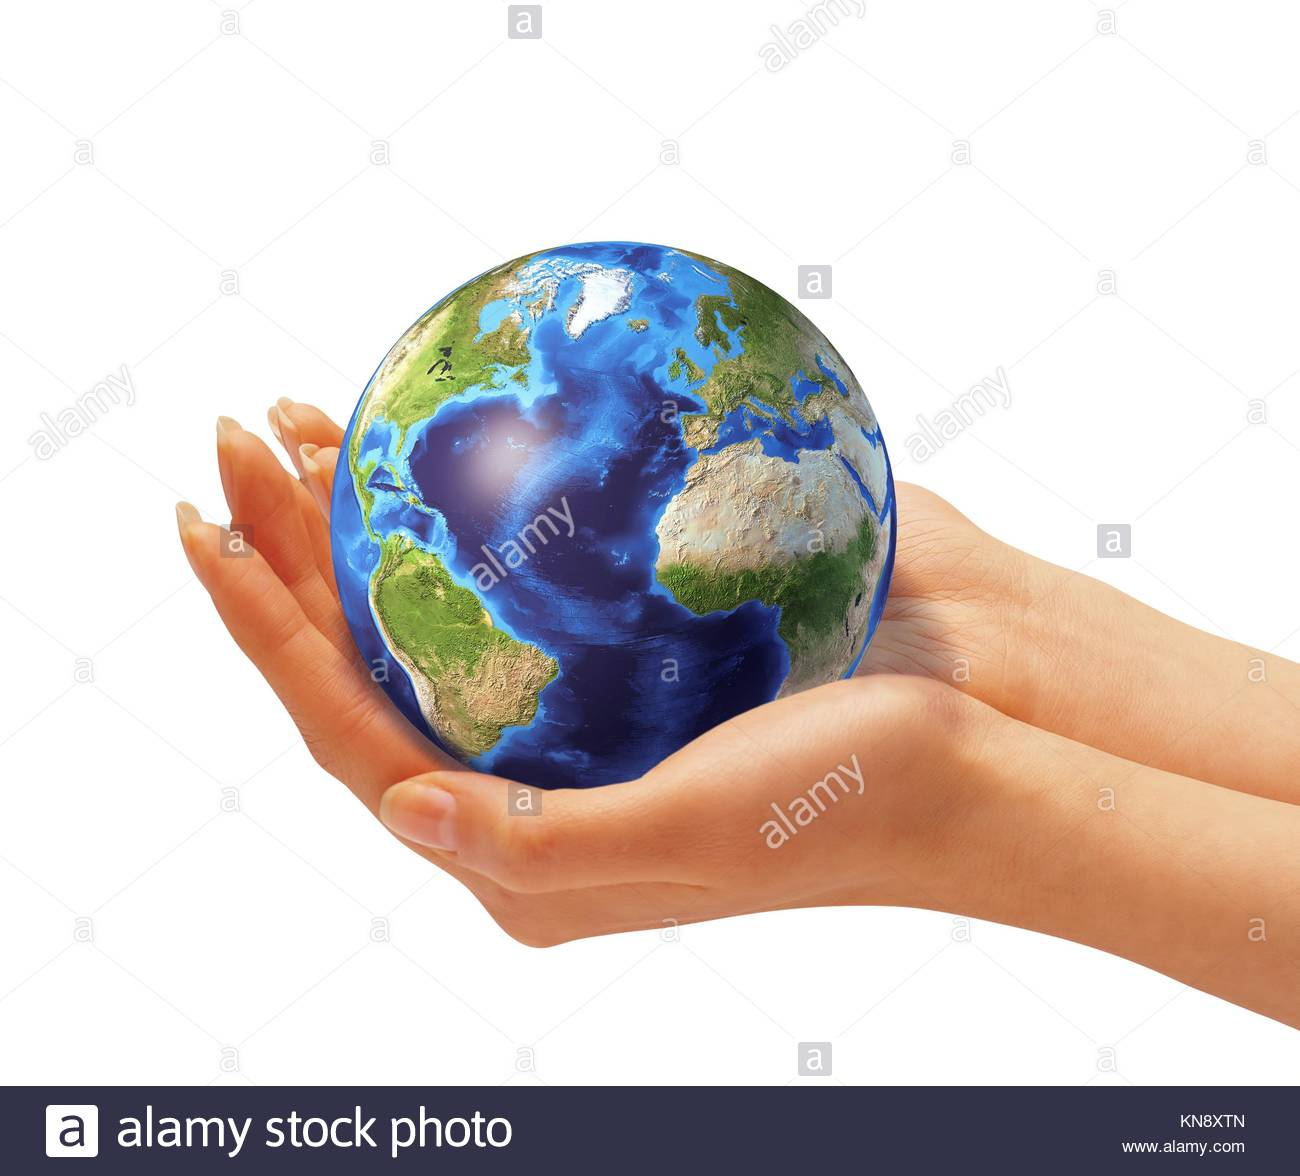 autonomy and responsibility in this earth Autonomy, authority and moral responsibility earth sciences questions about the relationship between autonomy and authority are raised in nearly every area.